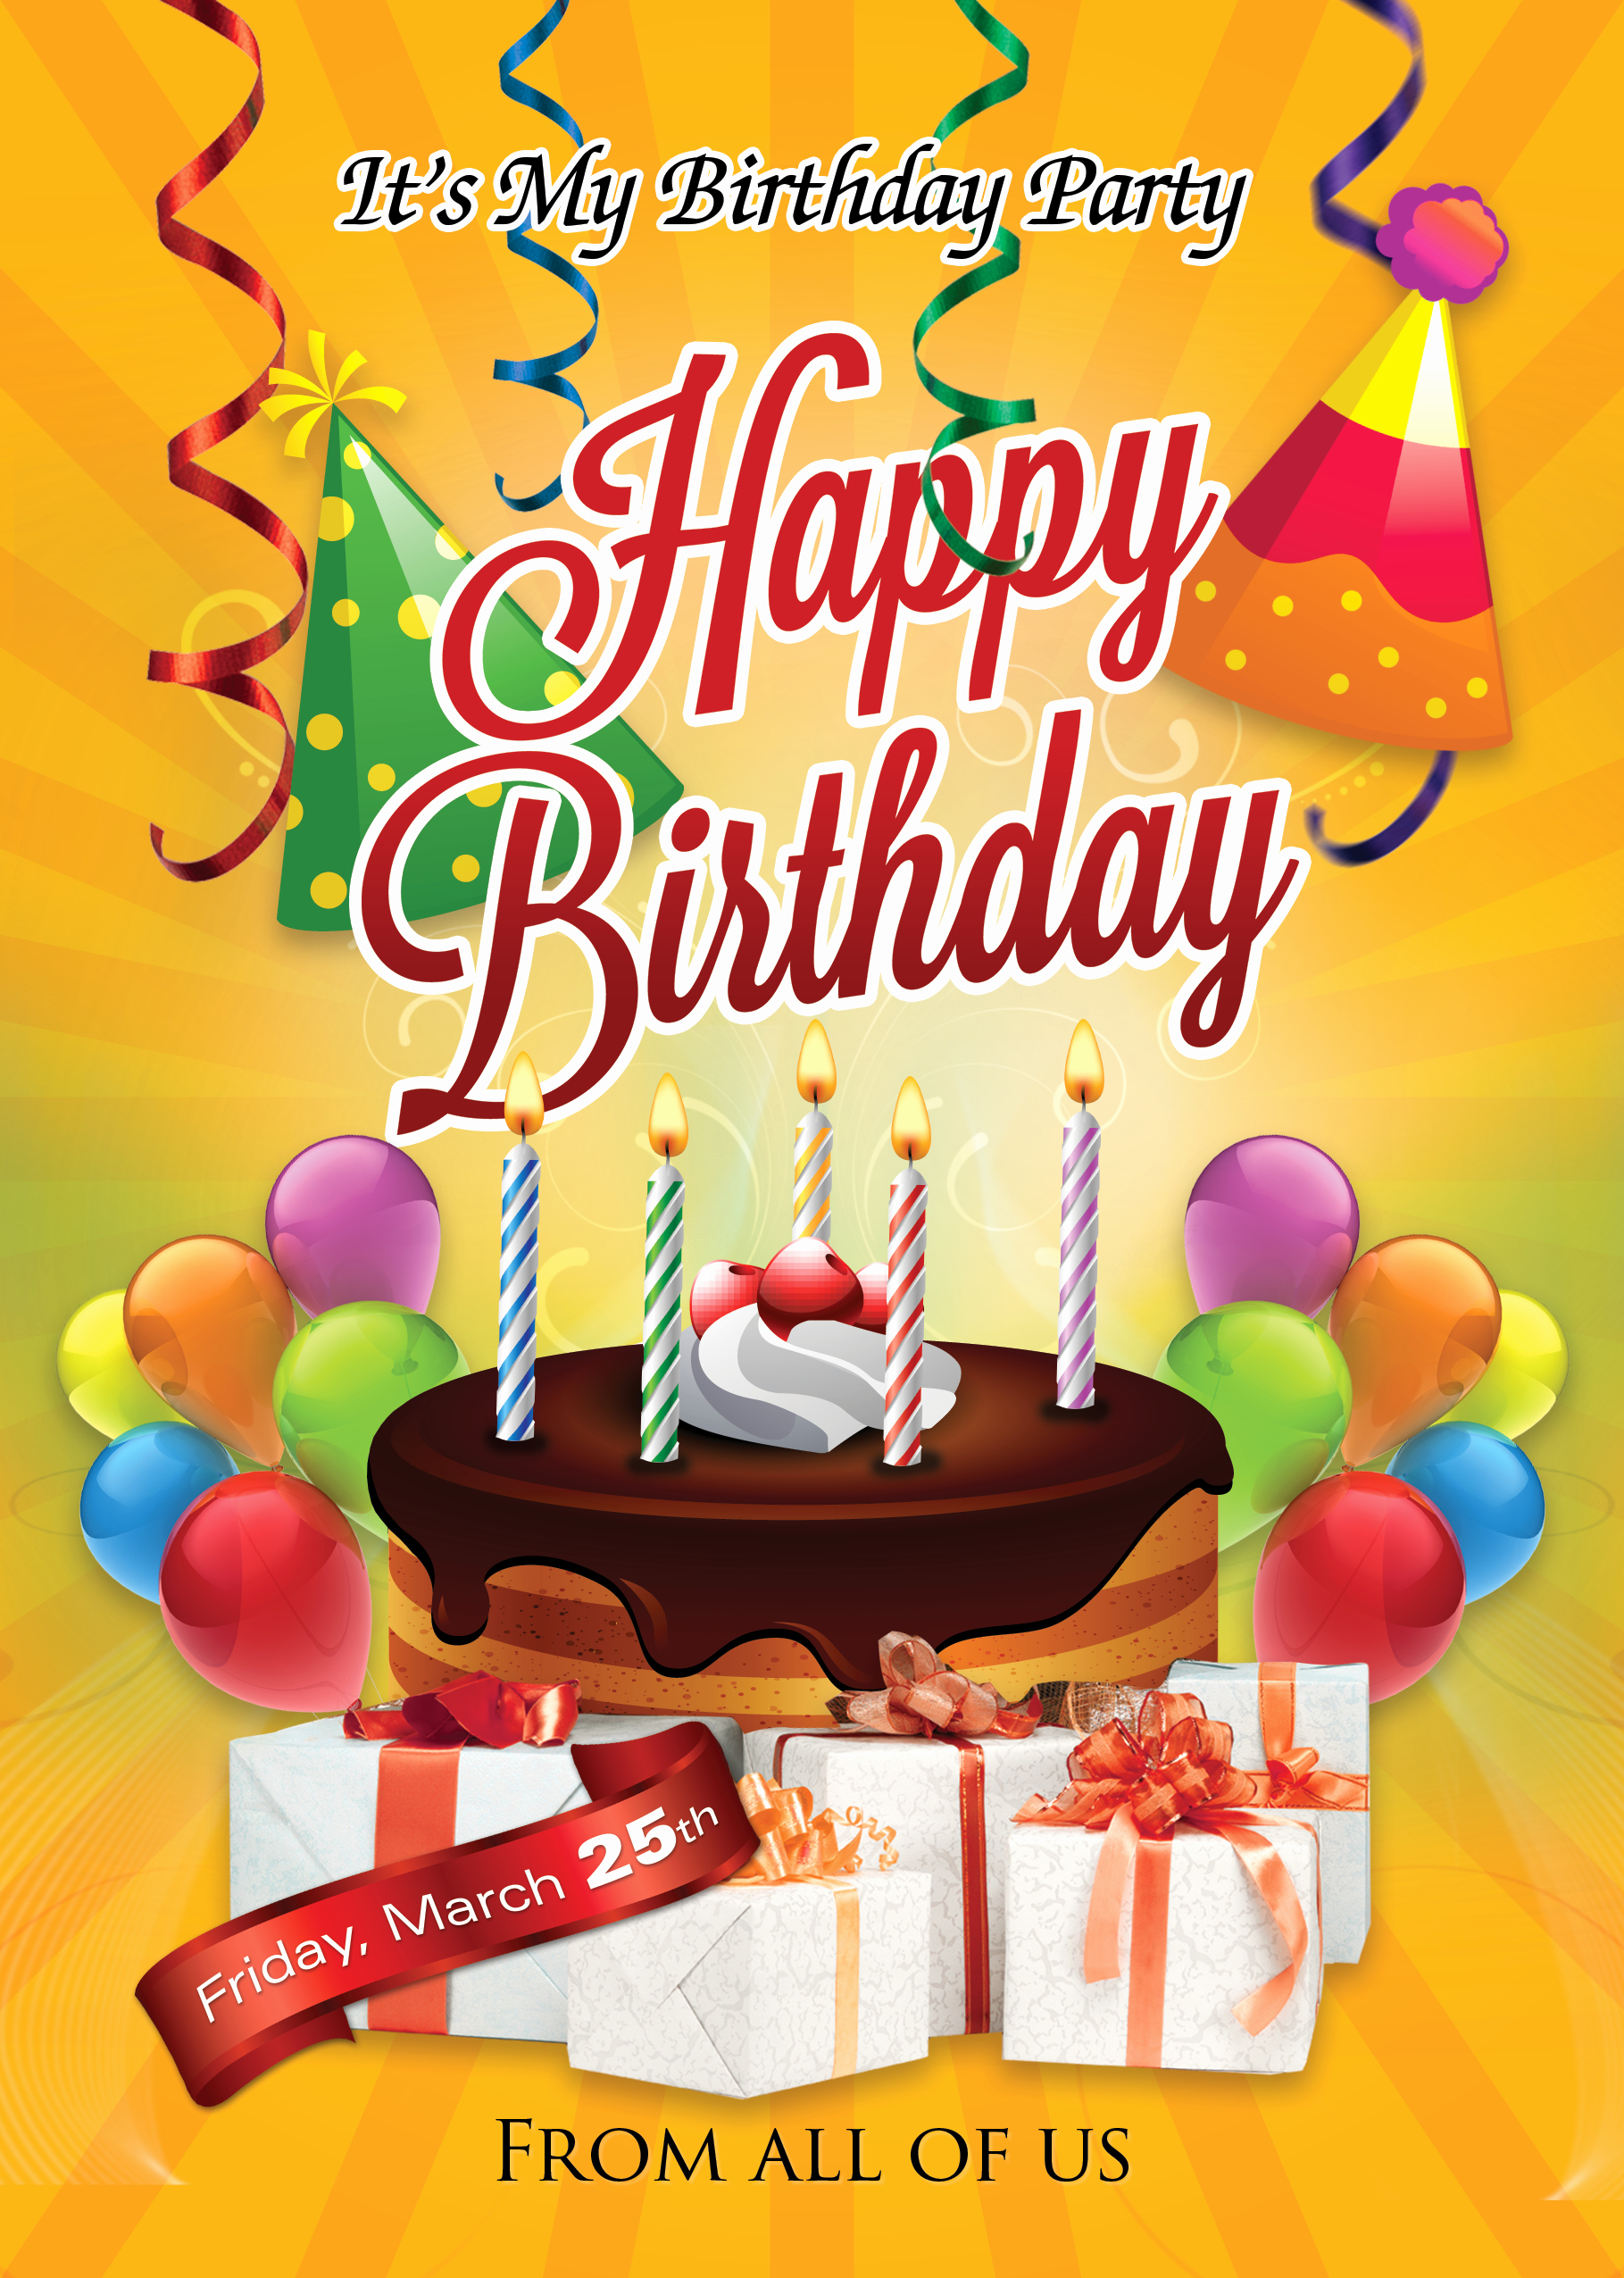 Birthday Party Flyer Template New Birthday Flyer Template Shop Cs6 Free Flyer Templates